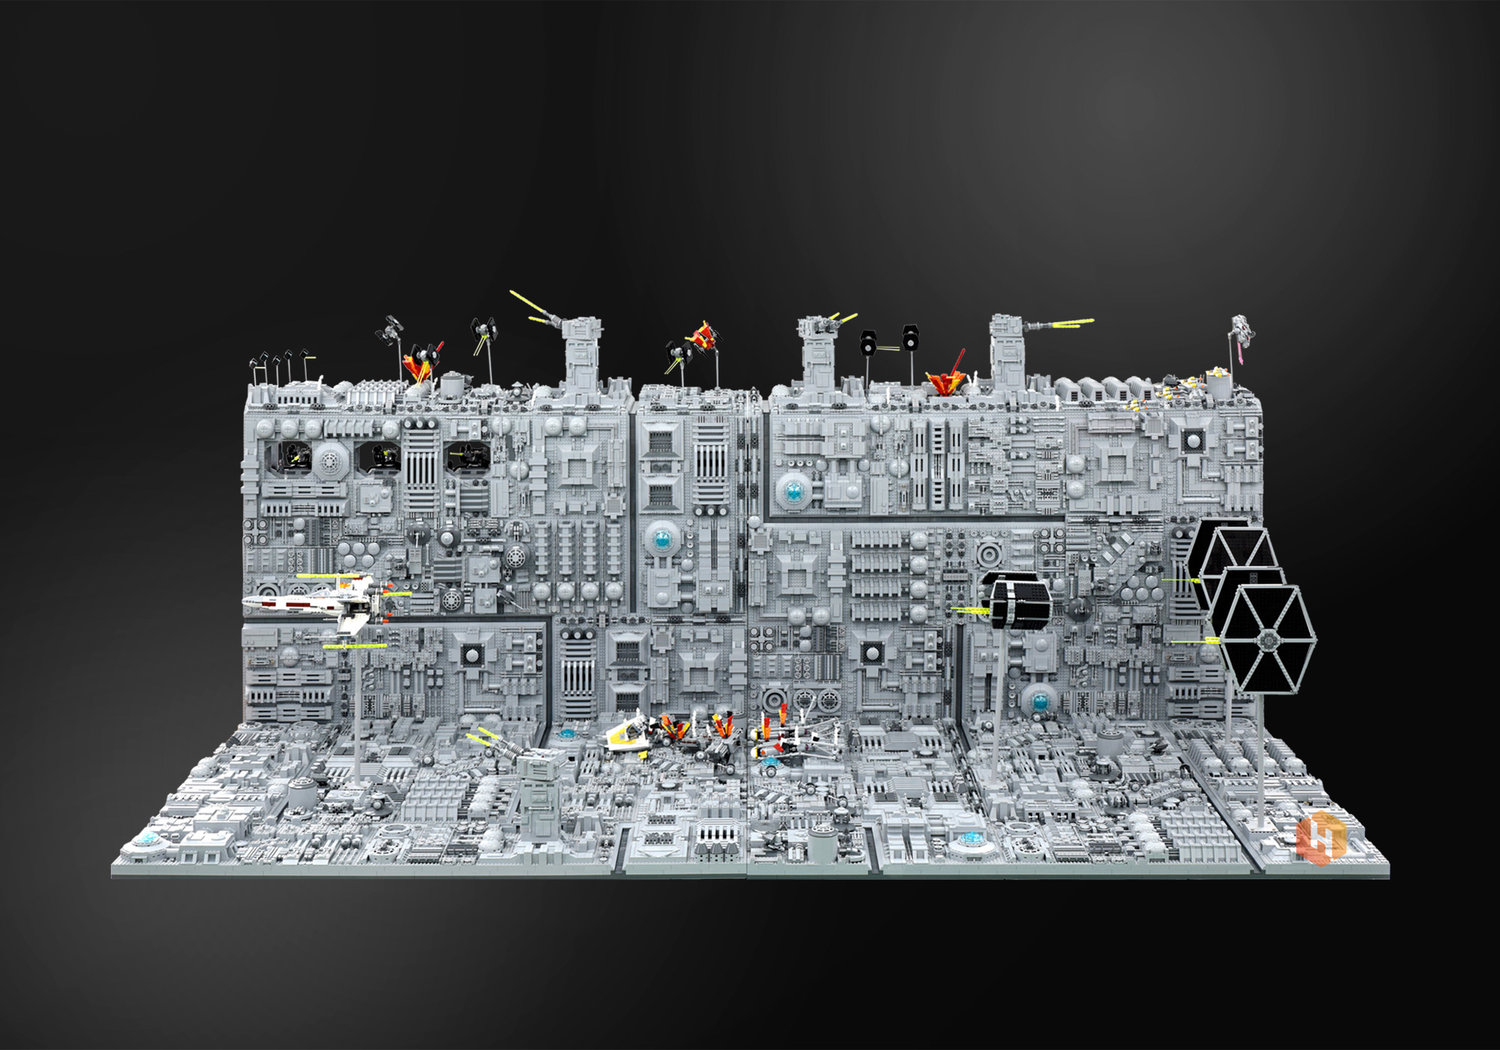 super-detailed-lego-diorama-of-the-star-wars-death-star-trench-run-stays-on-target2